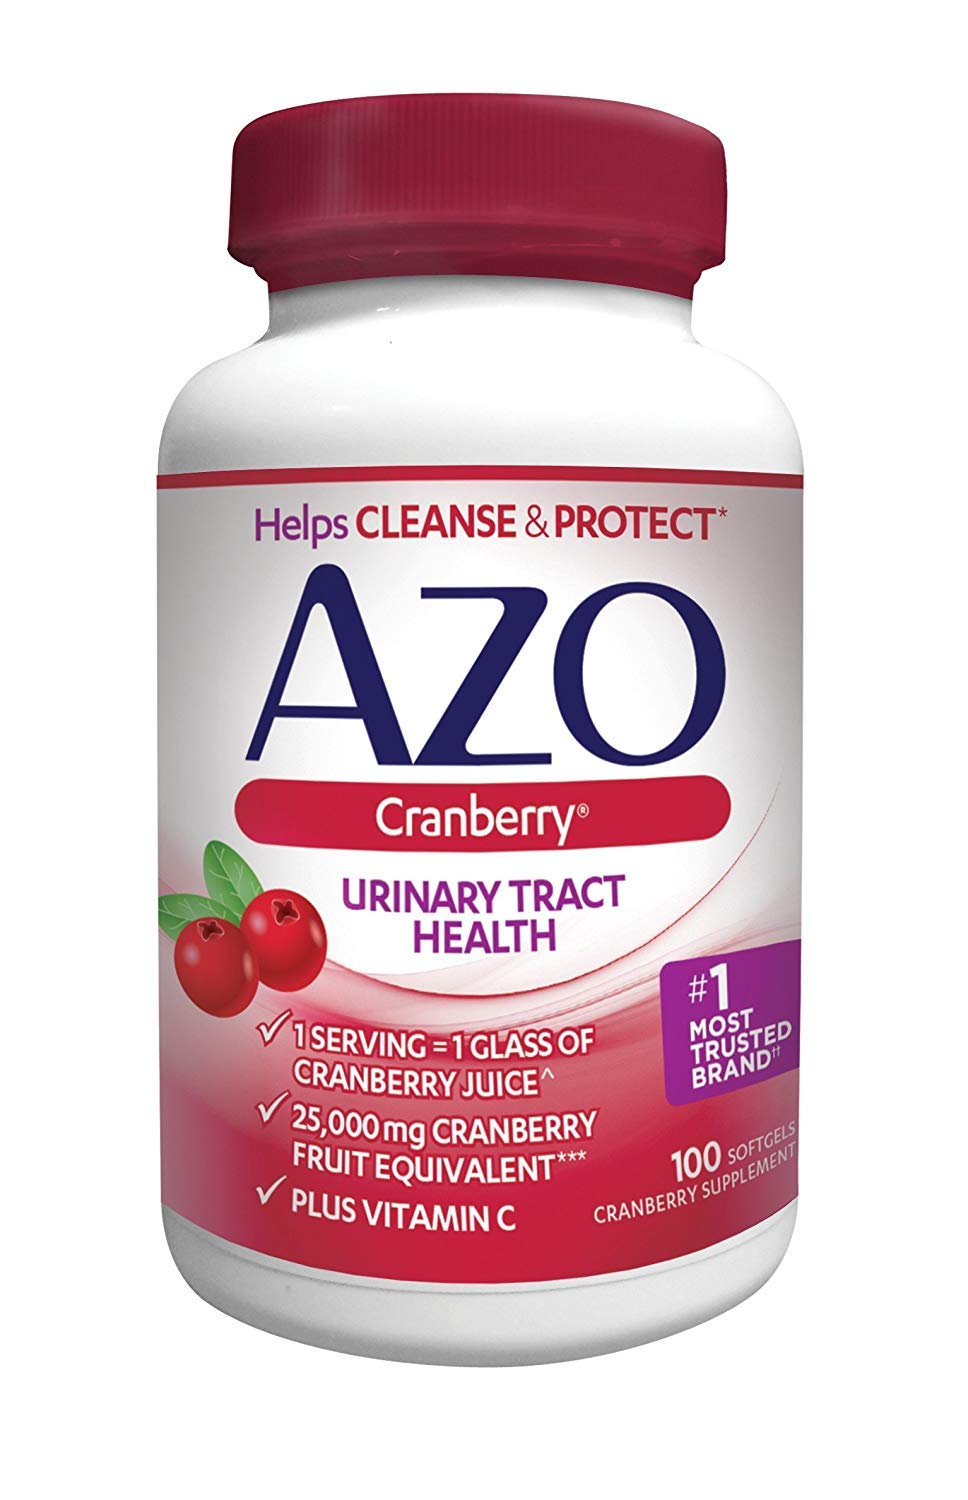 AZO Cranberry, Daily Urinary Tract Health Dietary Supplement, 25,000 mg of Cranberry Fruit Equivalent Per Dose Equal to One Glass of Cranberry Juice,